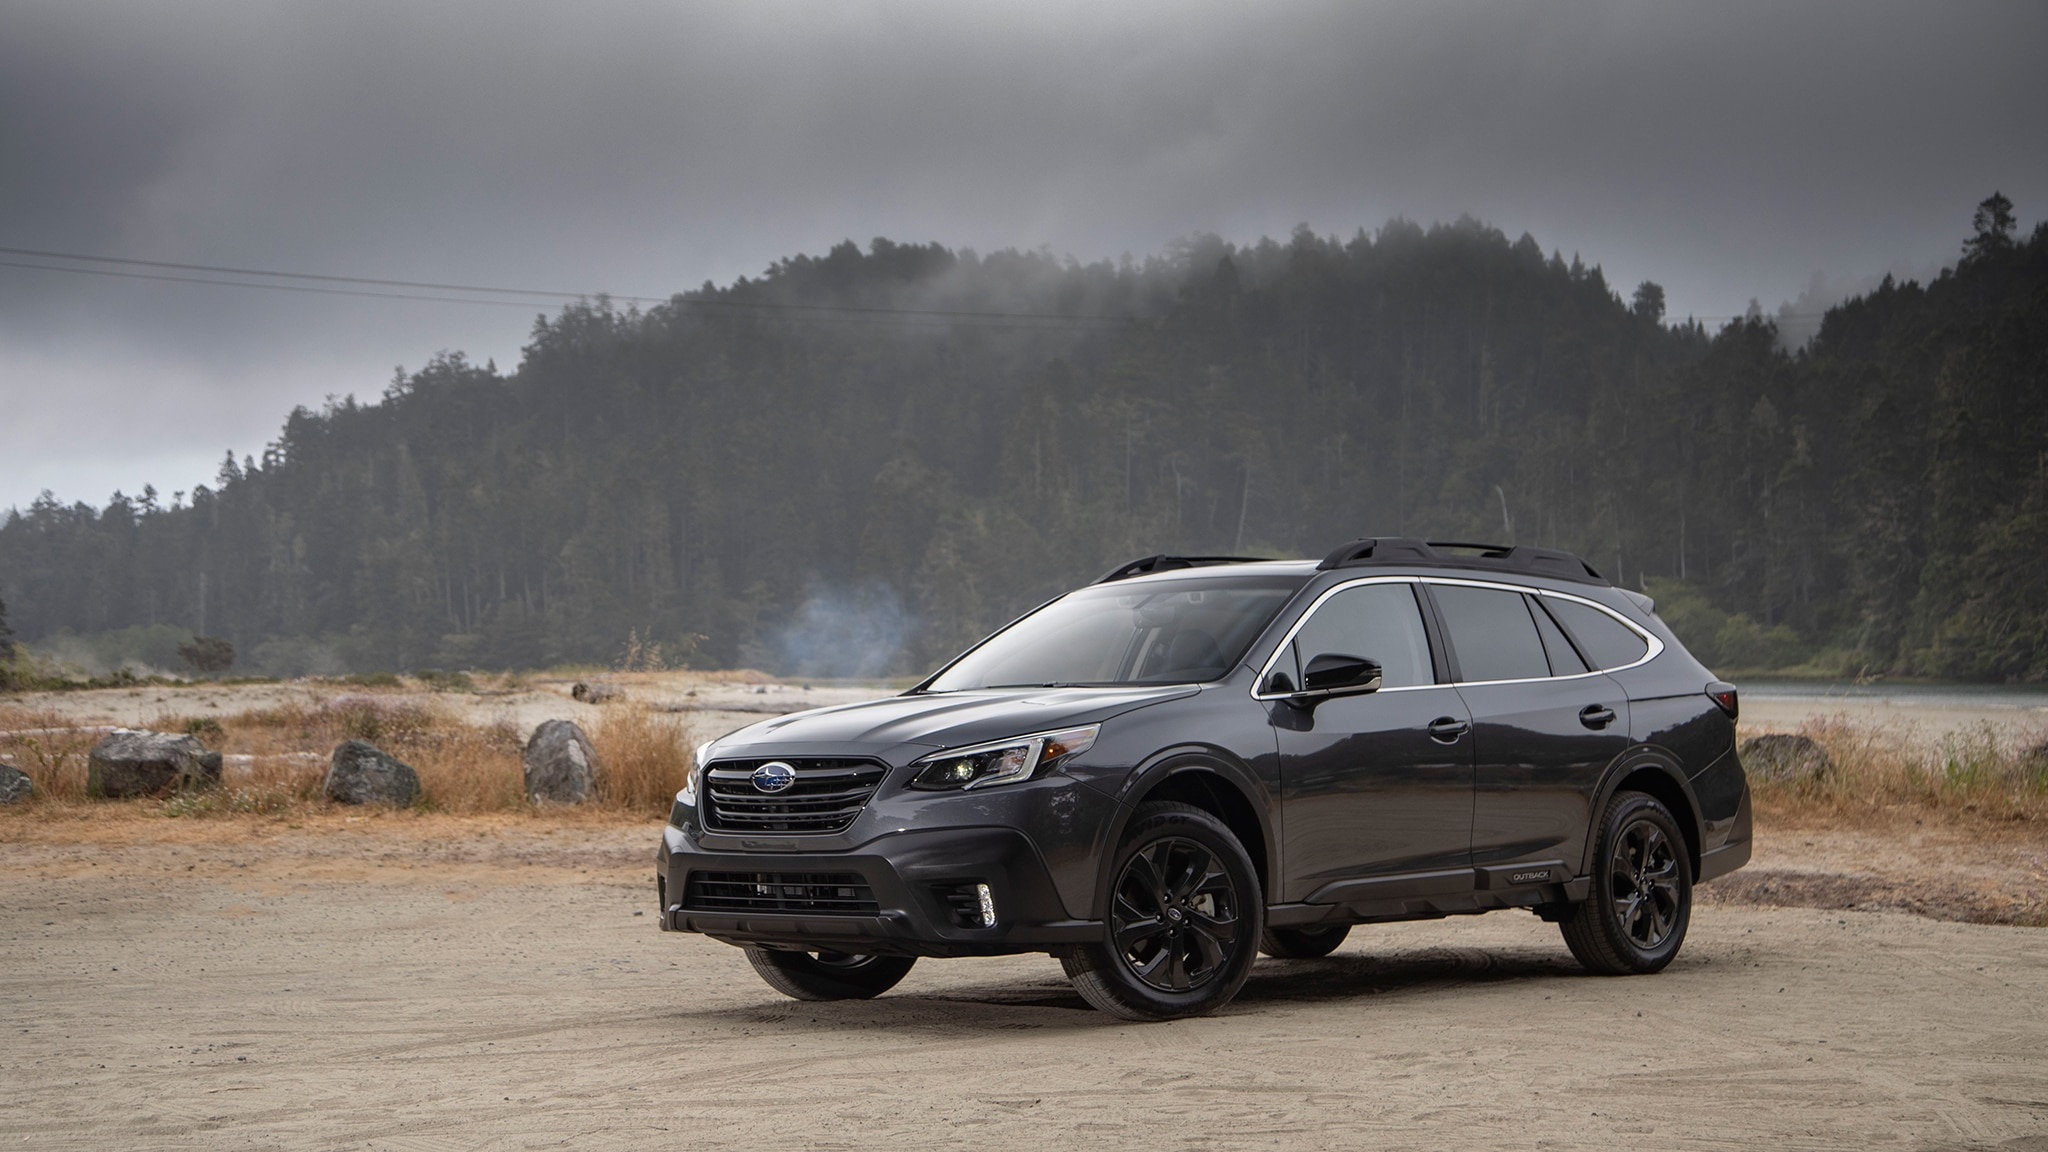 2020 subaru outback first drive review  all new  even better